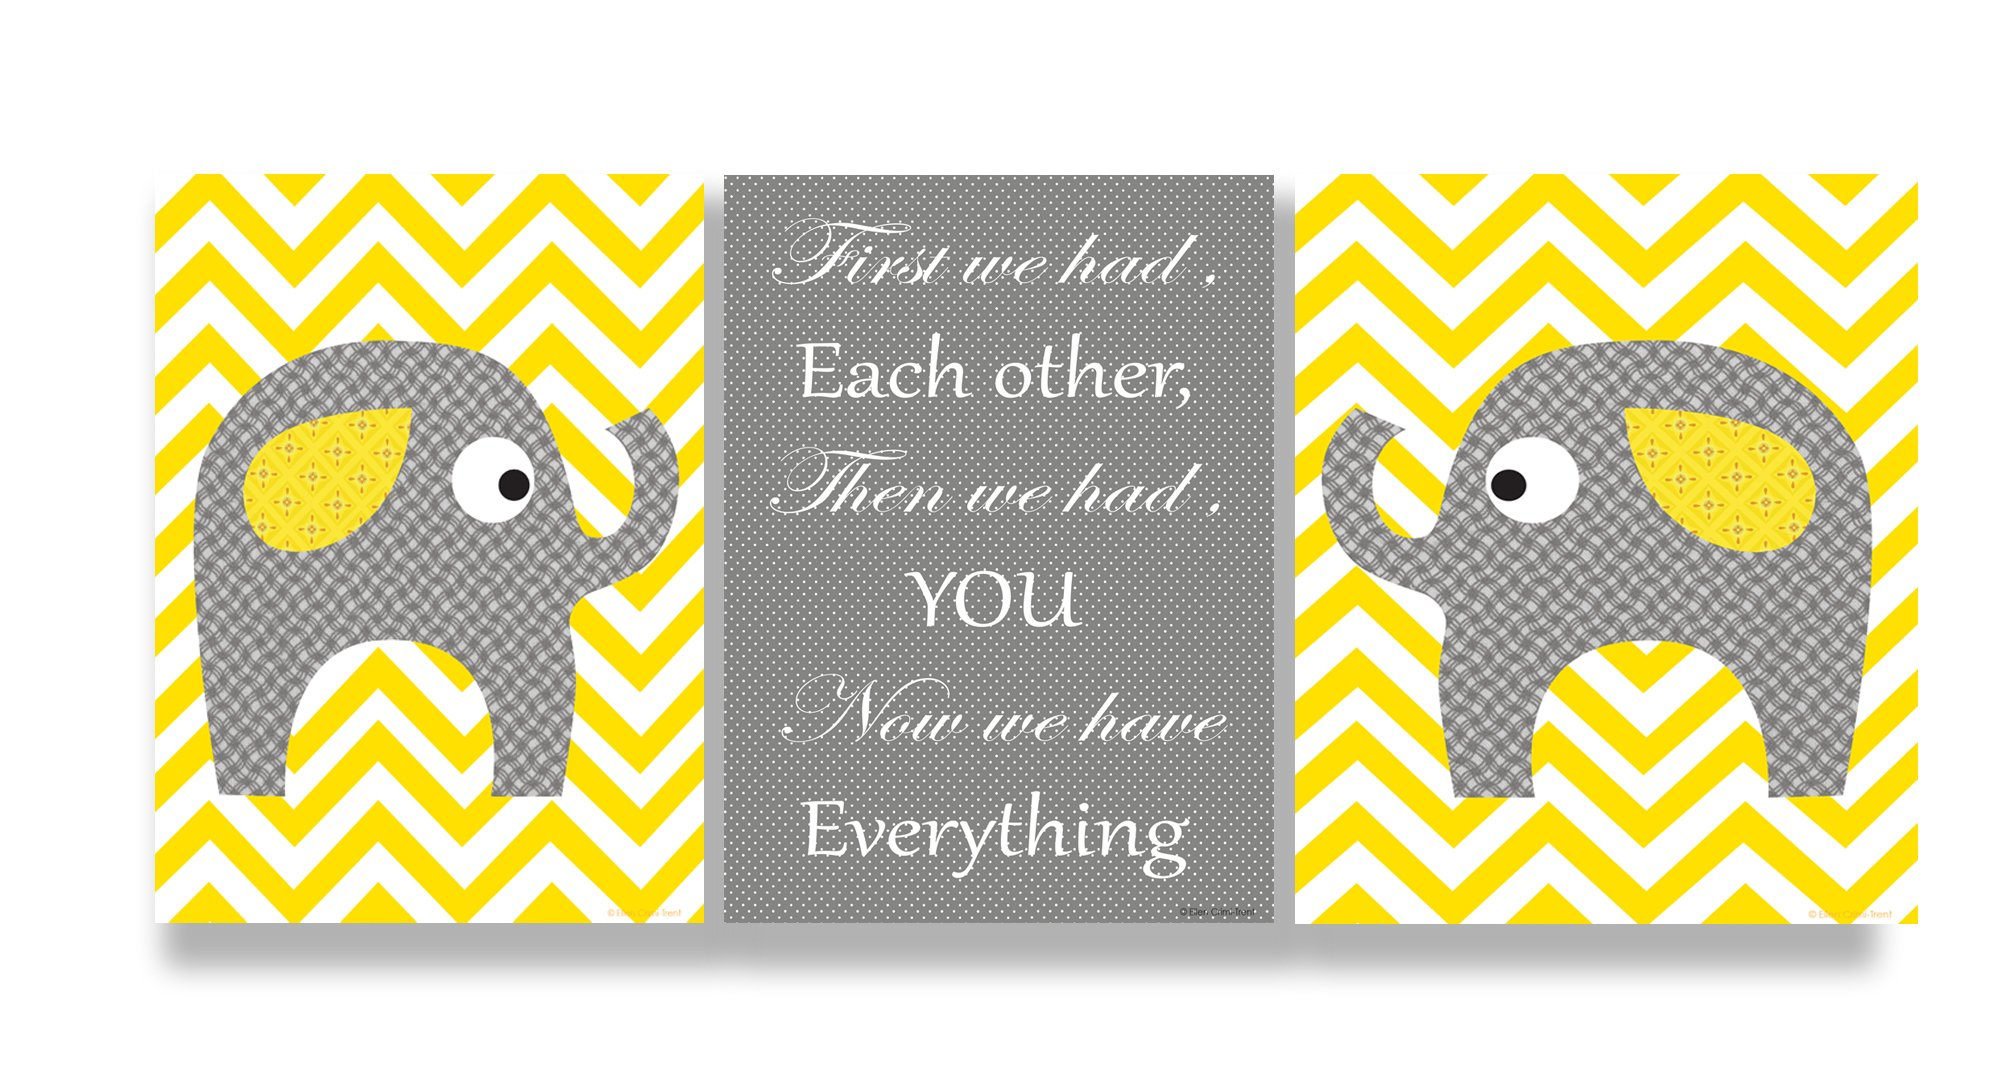 The Kids Room by Stupell Grey Elephants On Yellow Chevron Now We Have You 3-Pc. Rectangle Wall Plaque Set, 11 x 0.5 x 15, Proudly Made in USA by The Kids Room by Stupell